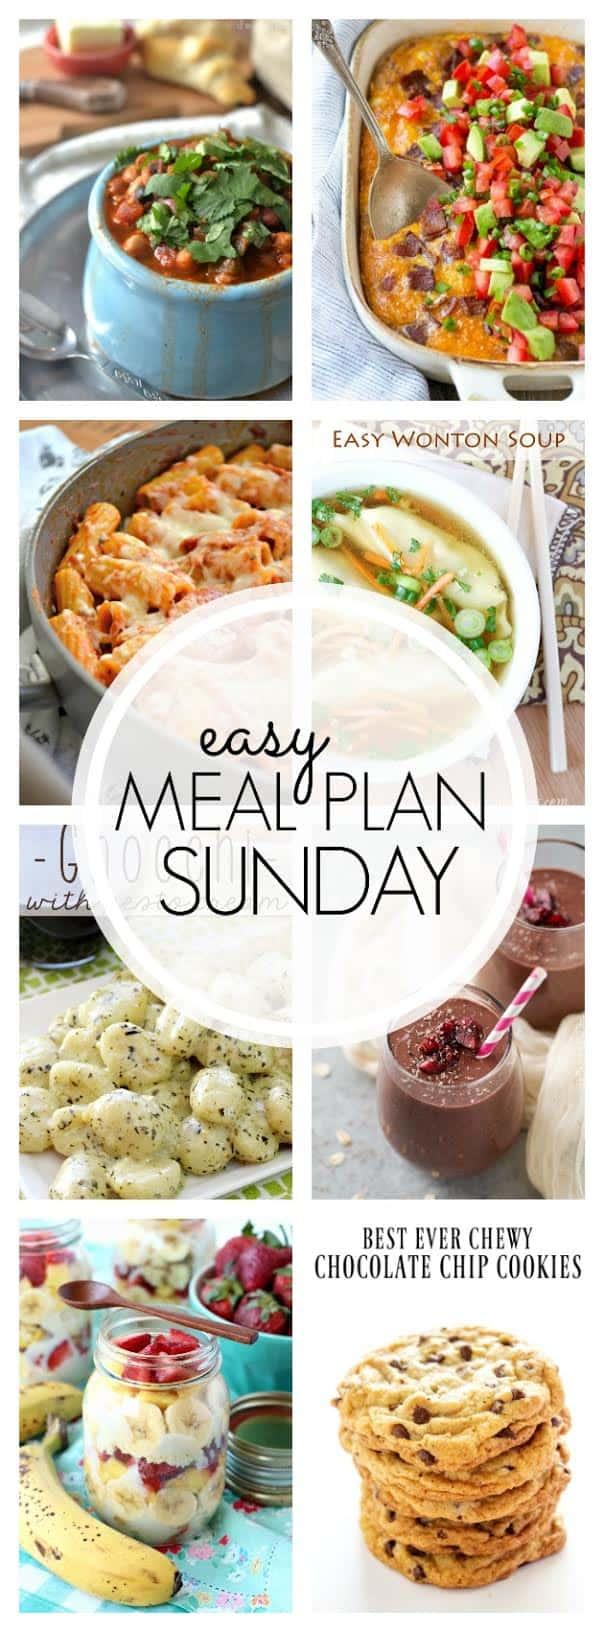 Meal Plan 86 long